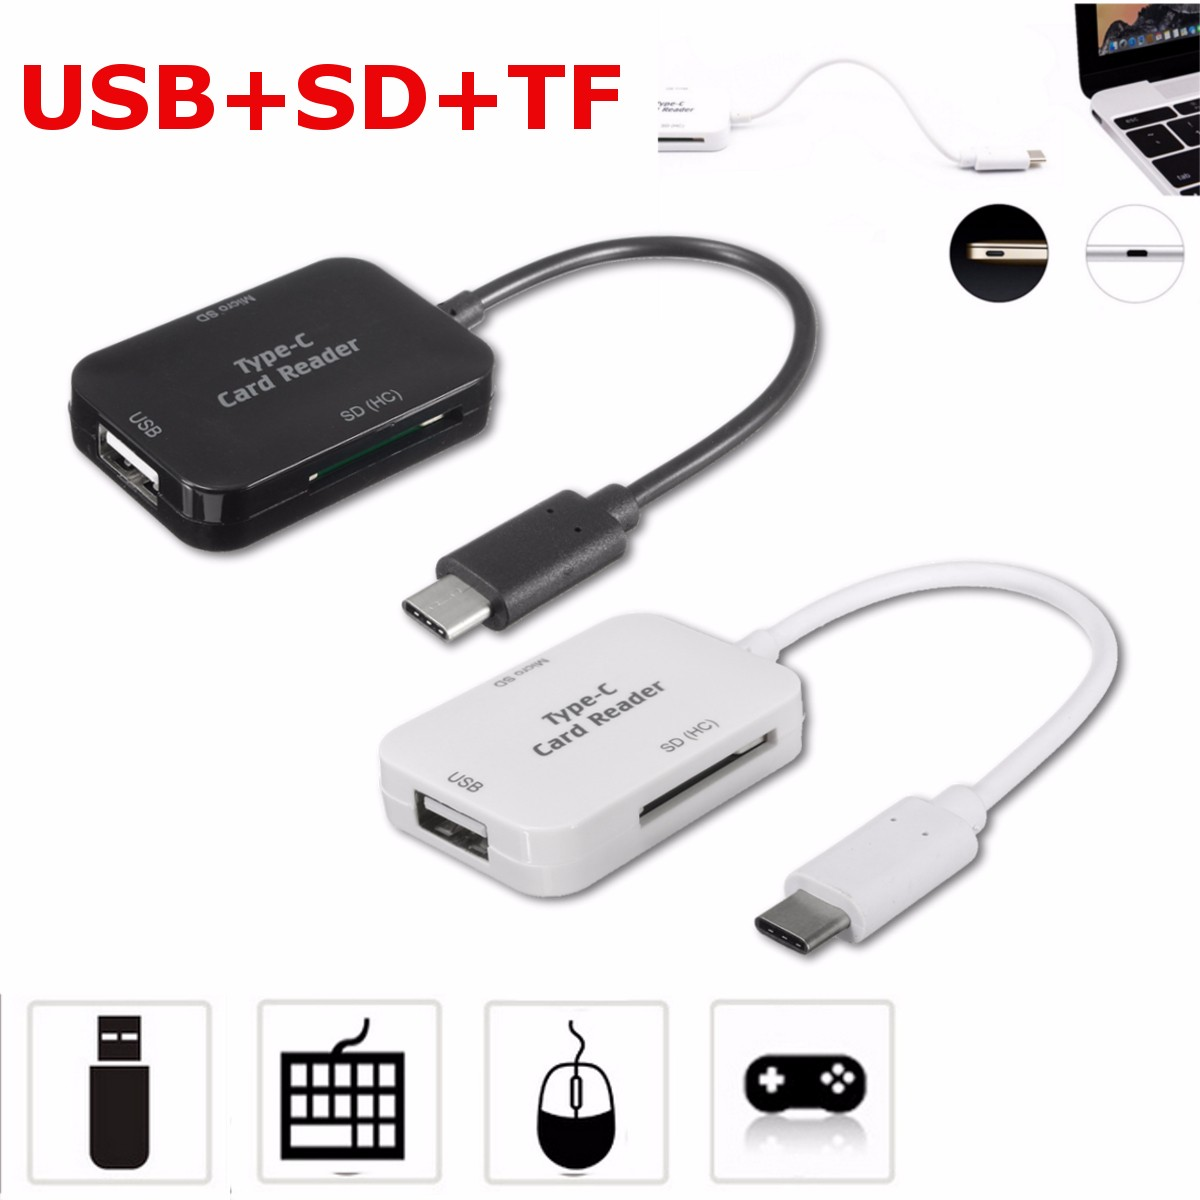 USB 3.1 Type C to USB 2.0 Expansion HUB SD TF Card Reader OTG Adapter Converter